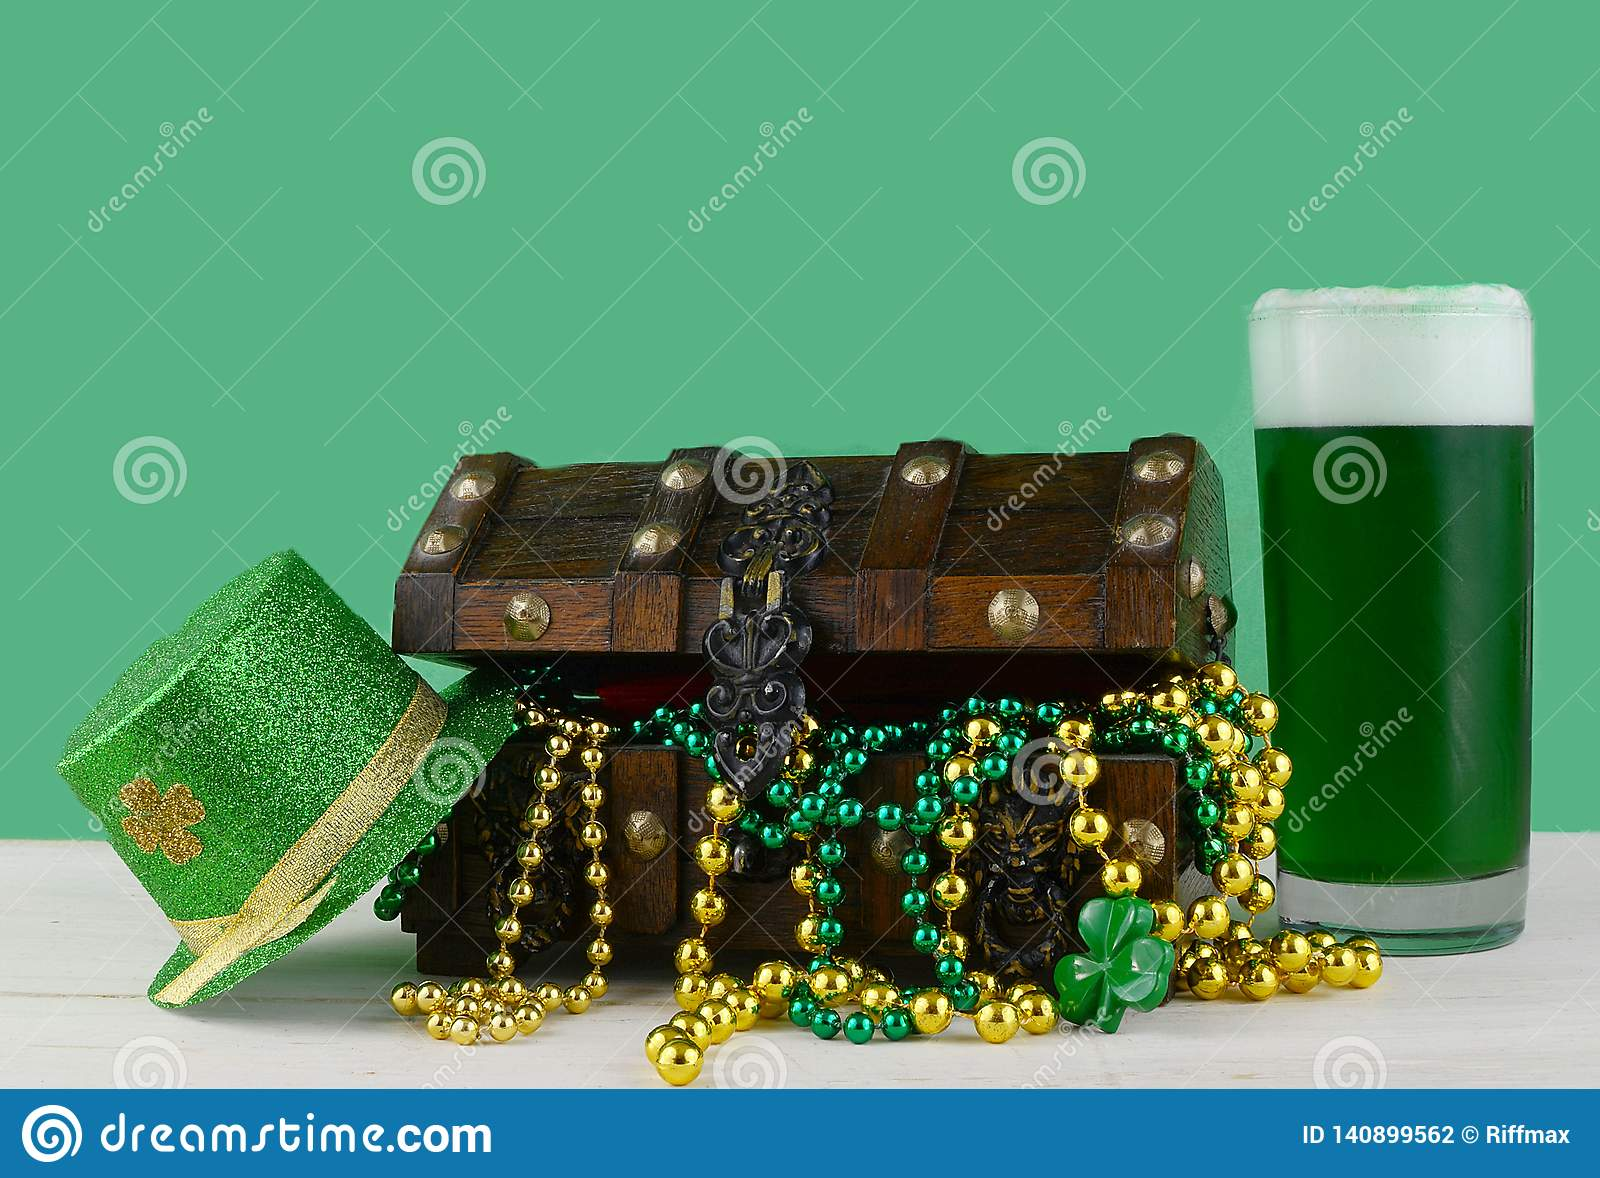 Image for Saint Patrick`s Day on March 17th. Treasure chest to symbolize luck and wealth with a glass of green beer.